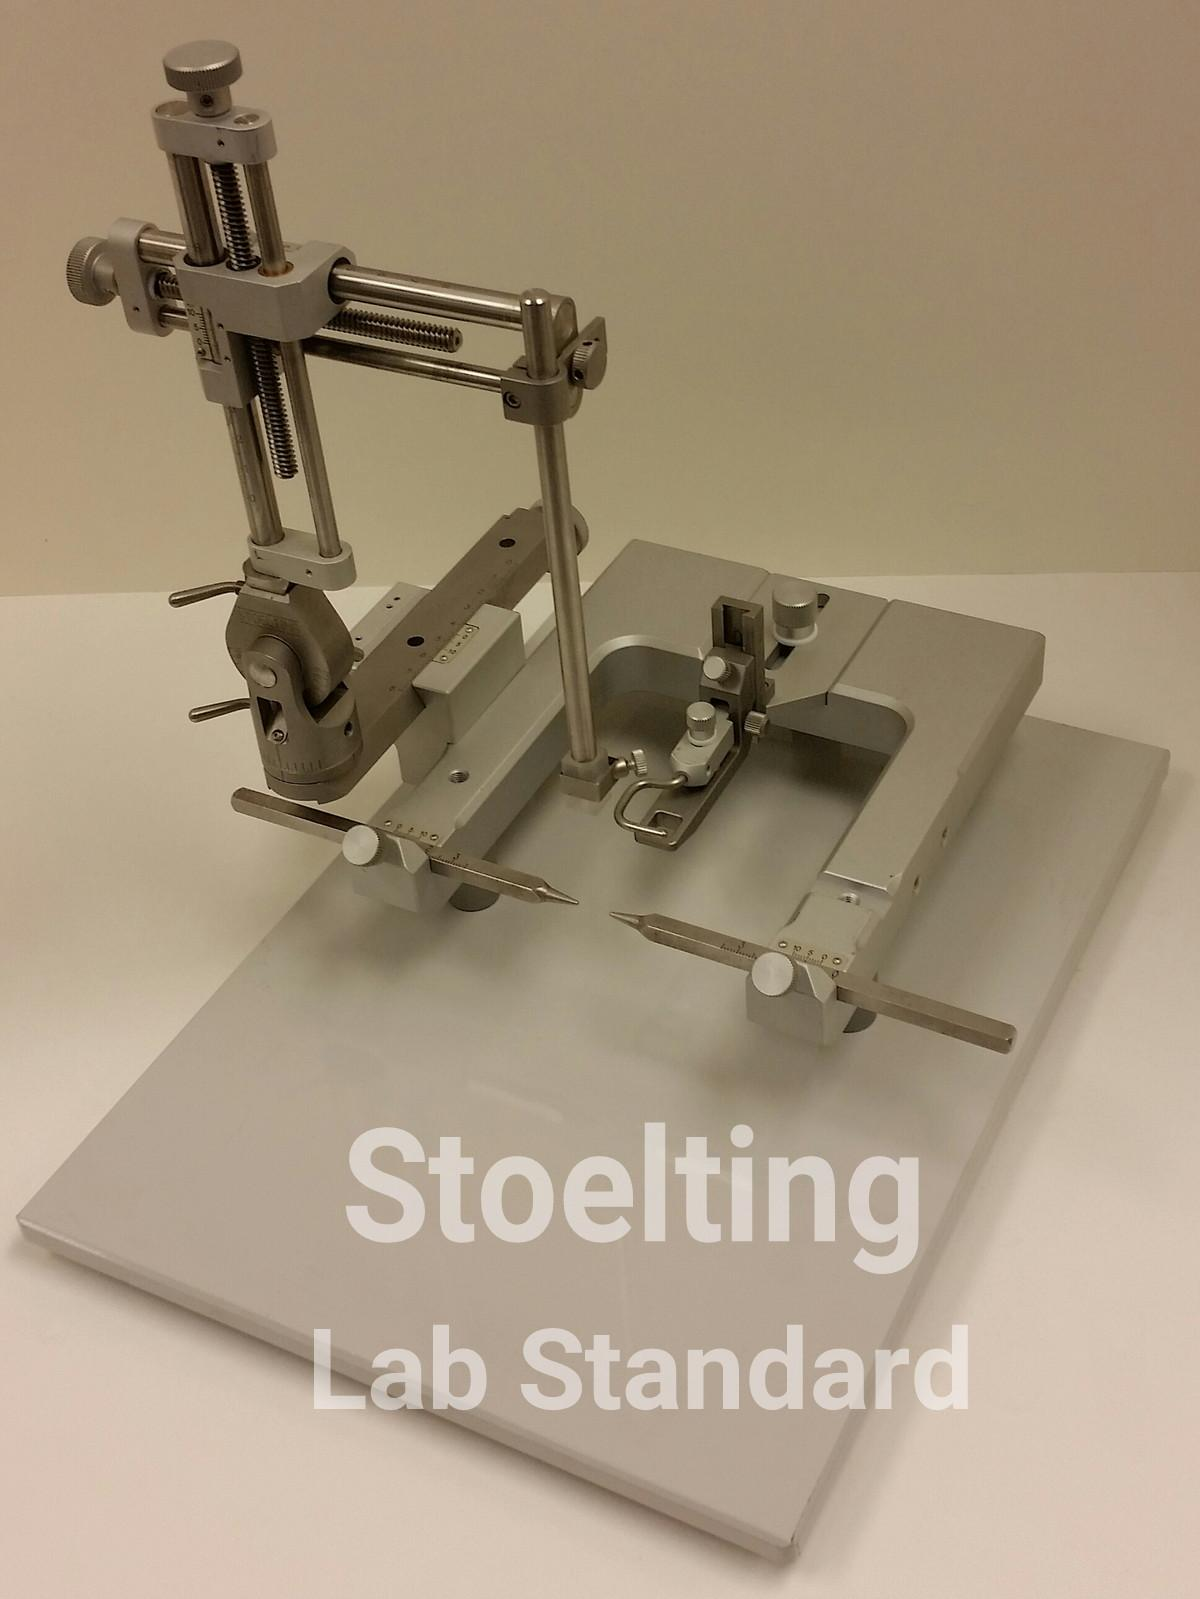 Stoelting Lab Standard Stereotaxic Frame